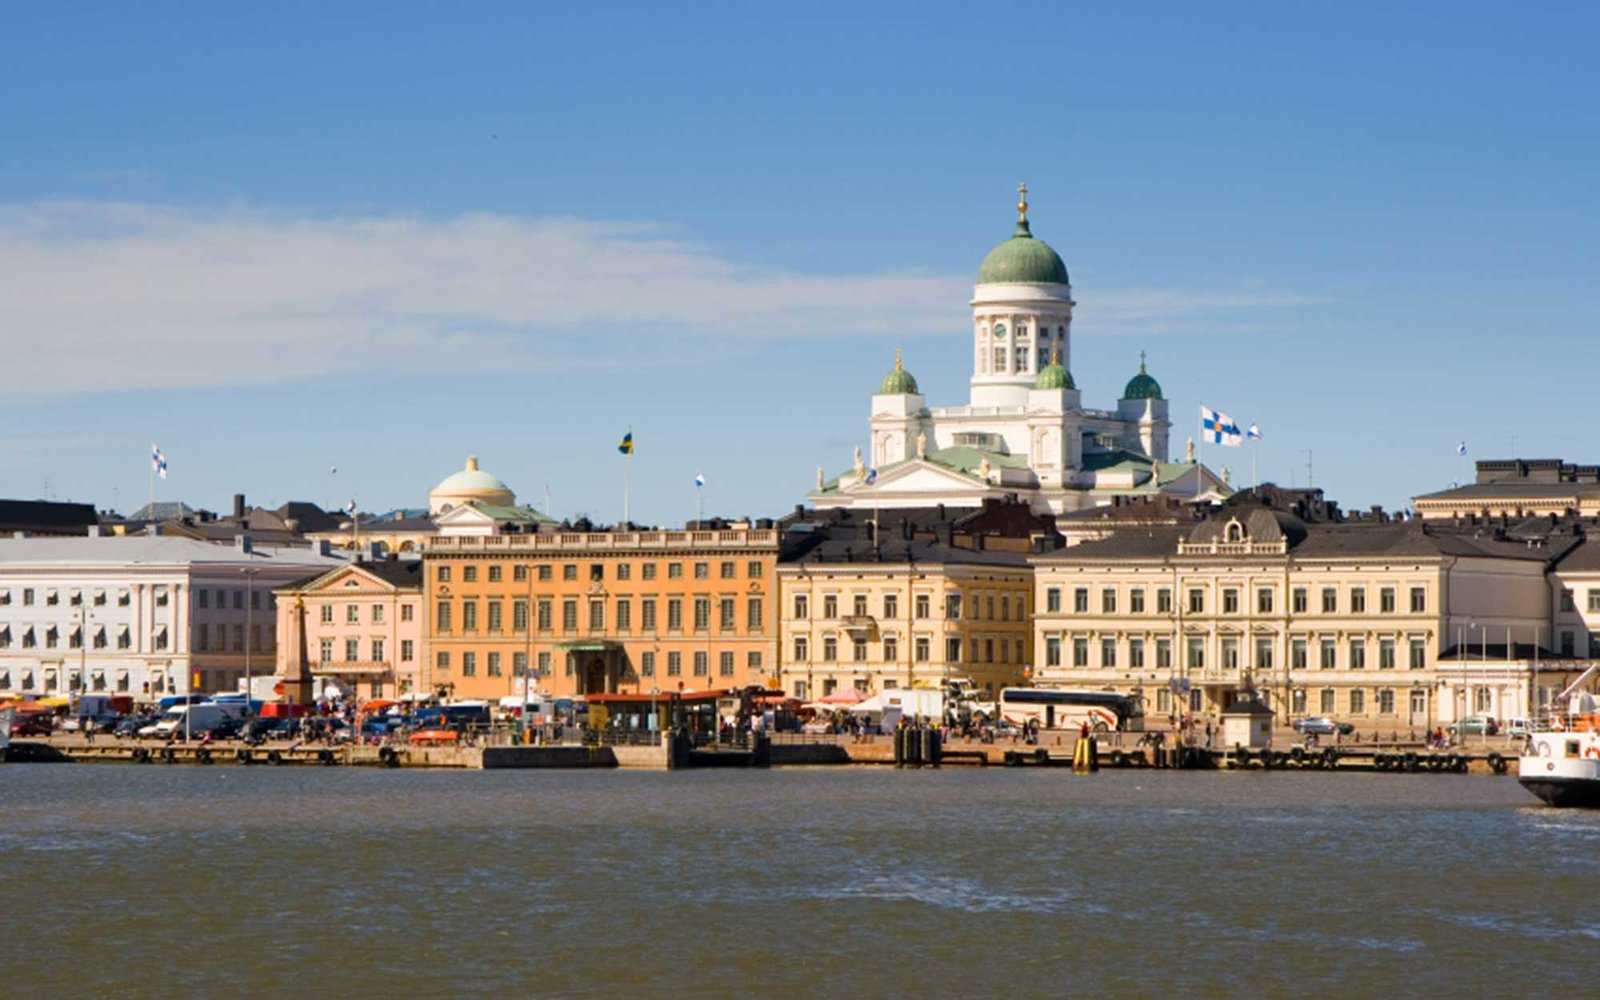 View of Helsinki from the sea